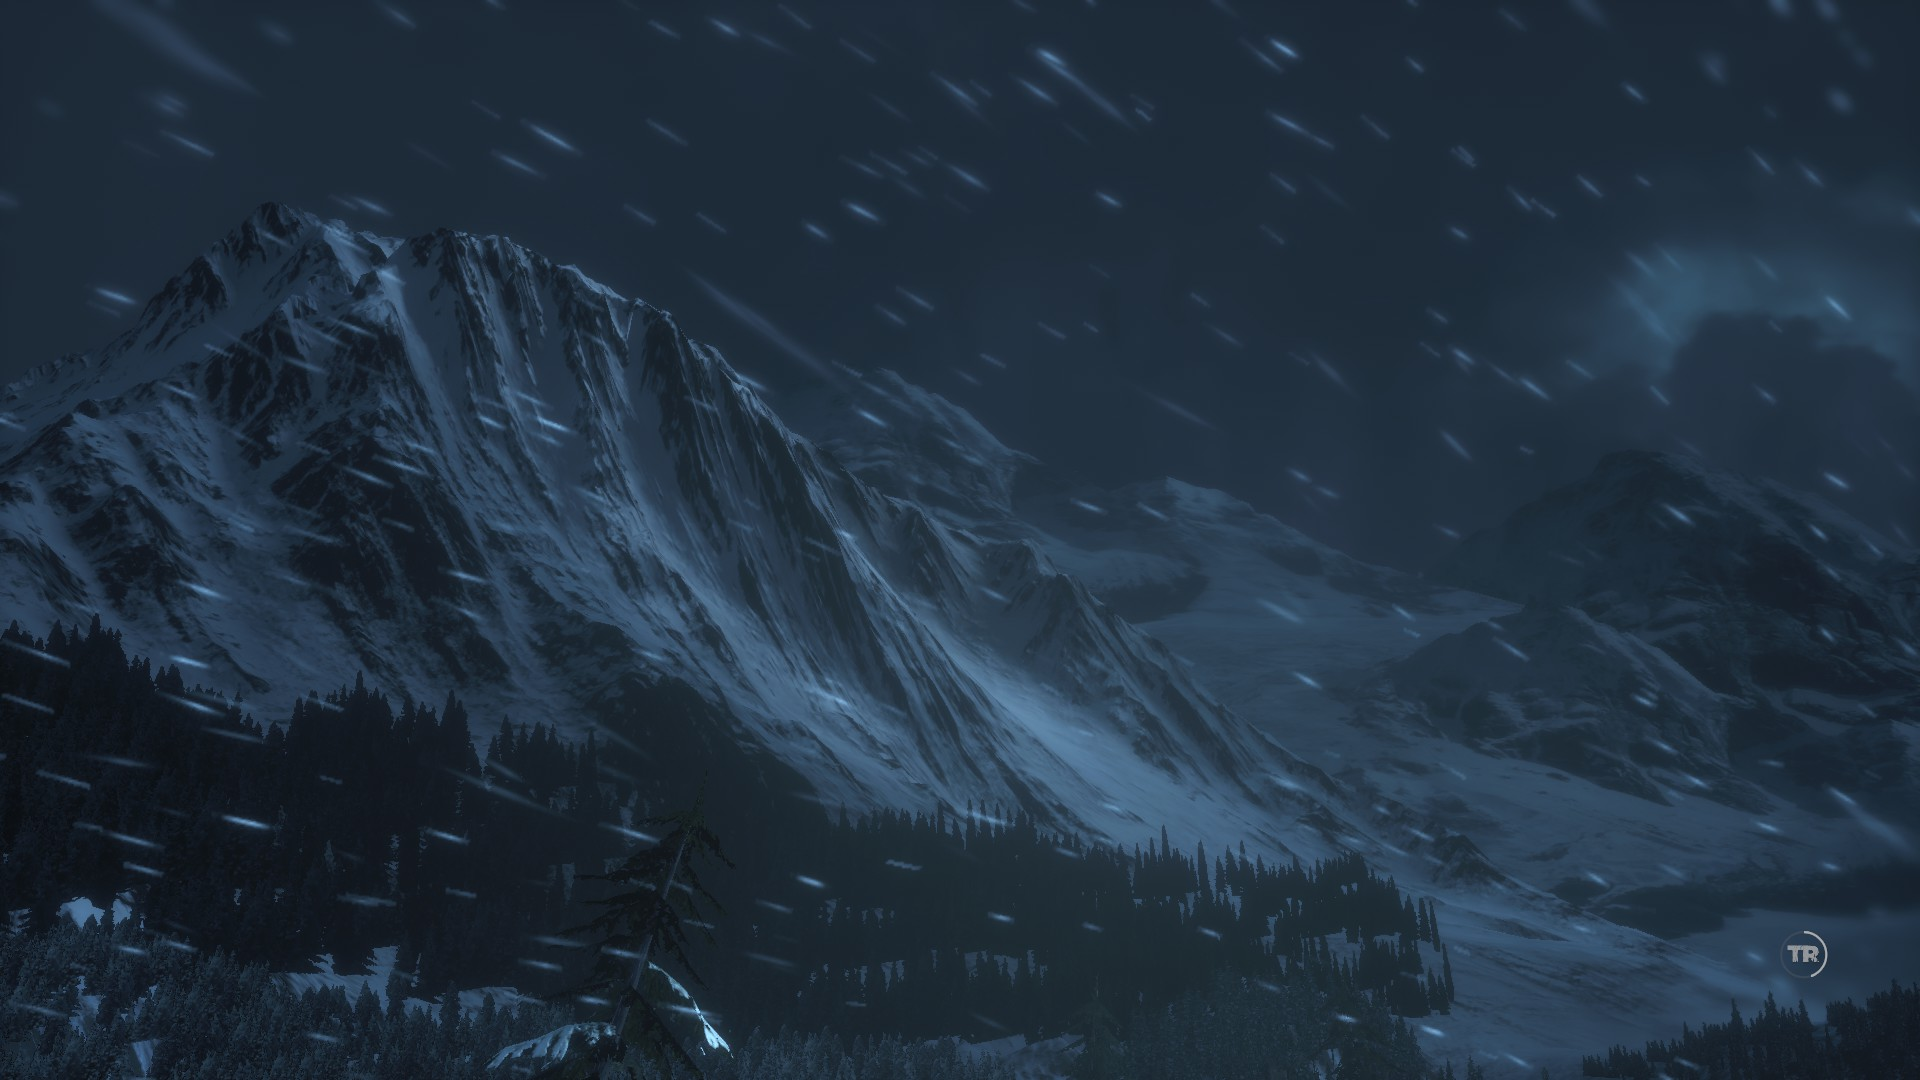 20171203211719_1.jpg - Rise of the Tomb Raider